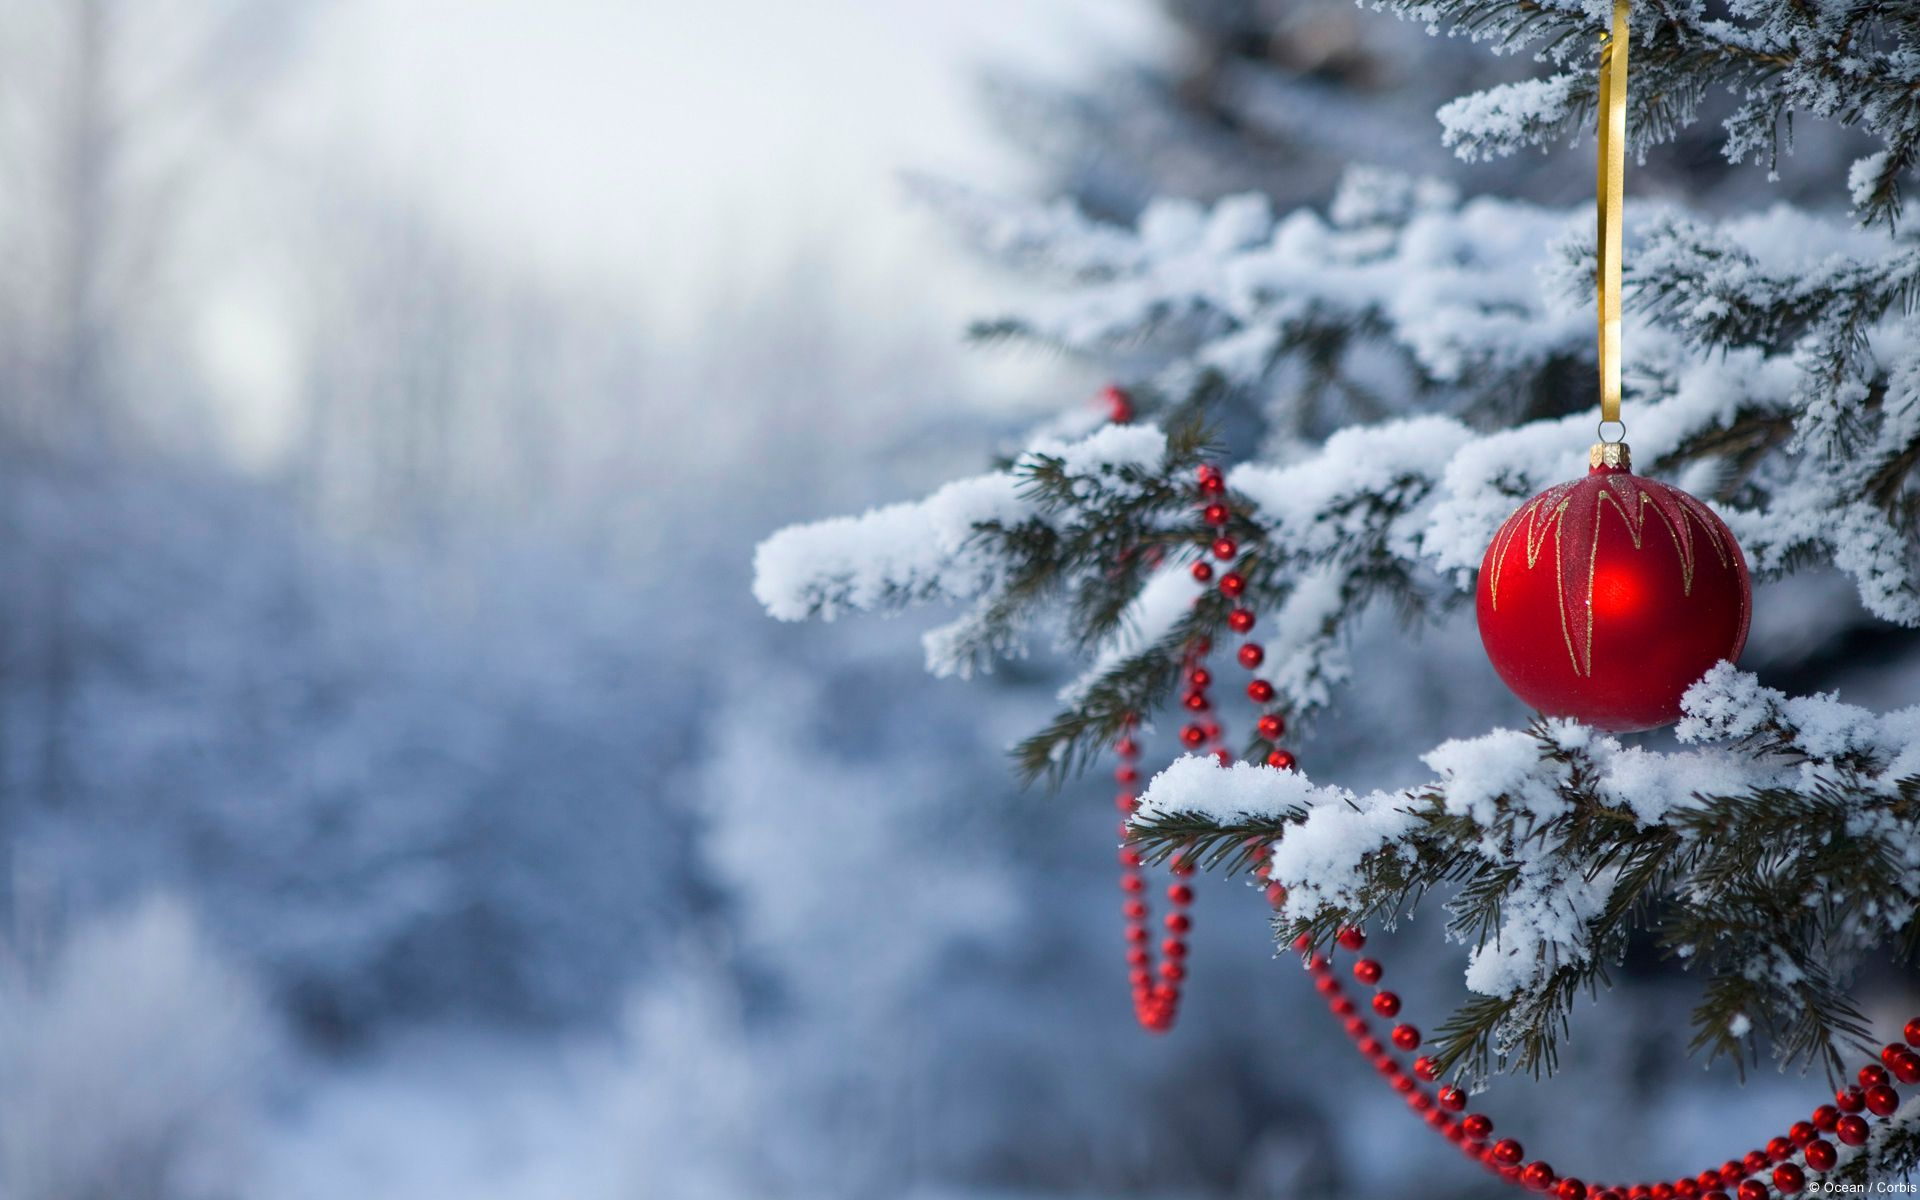 Find This Pin And More On Baby Its Cold Outside Free Christmas Wallpapers